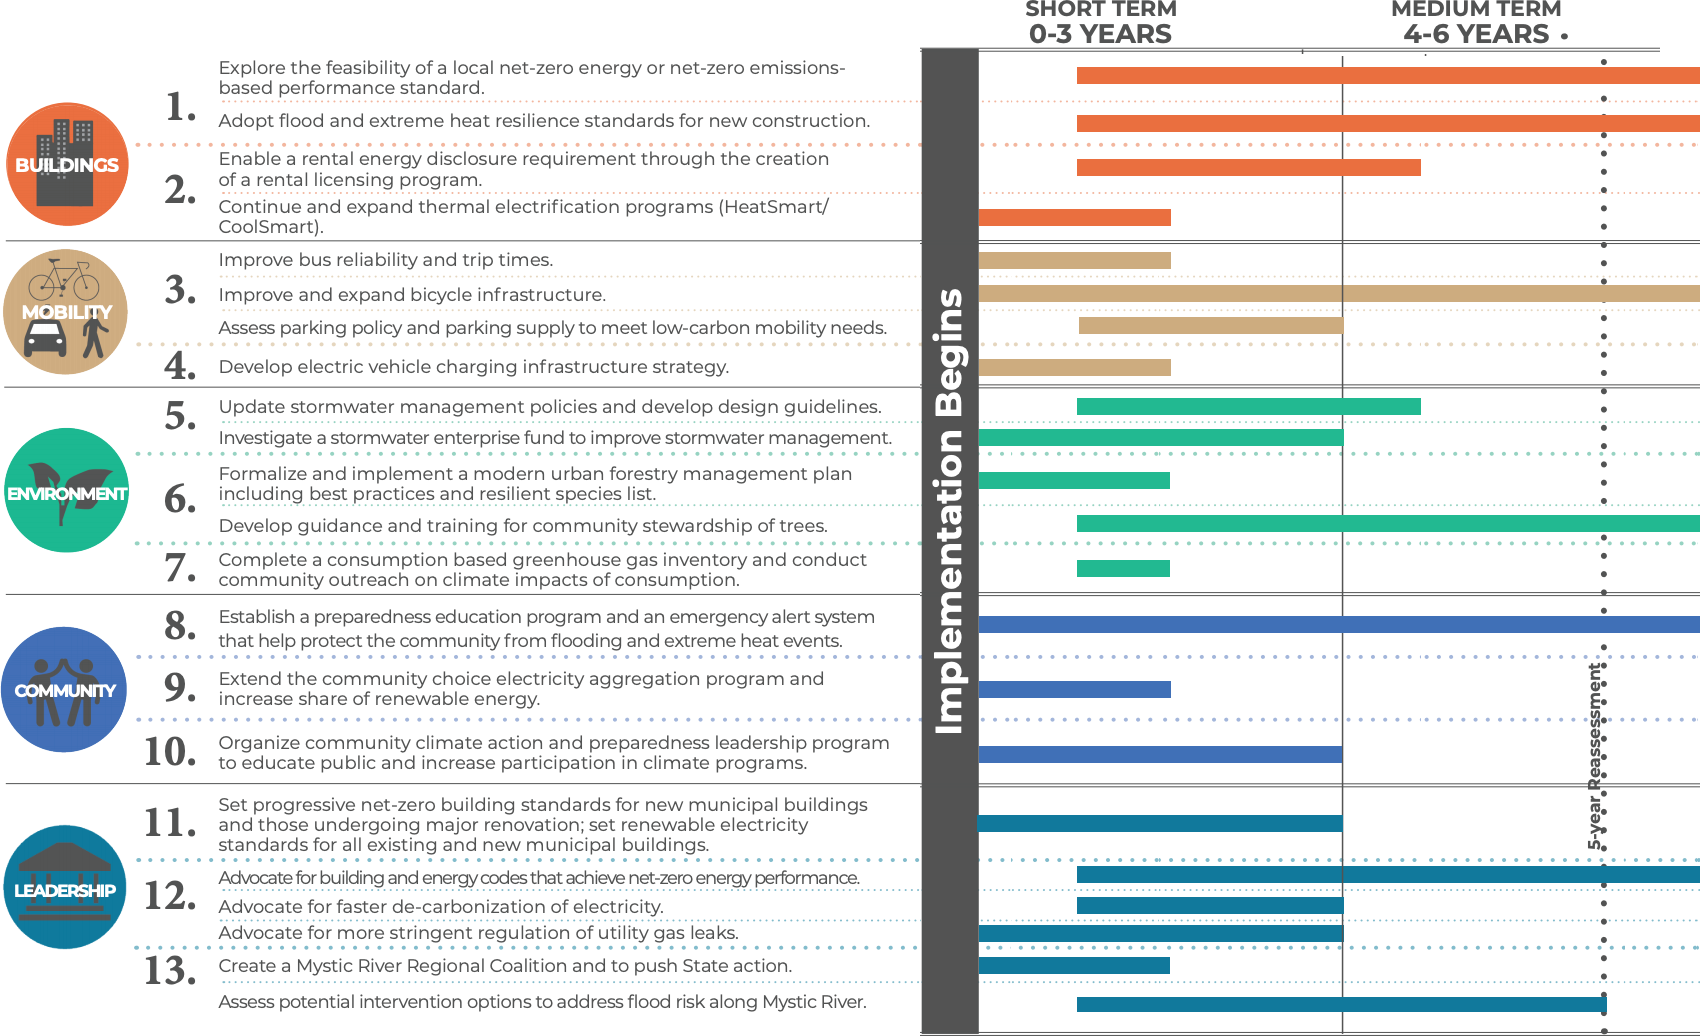 Somerville Climate Forward timeline thumbnail. View linked PDF for full info.